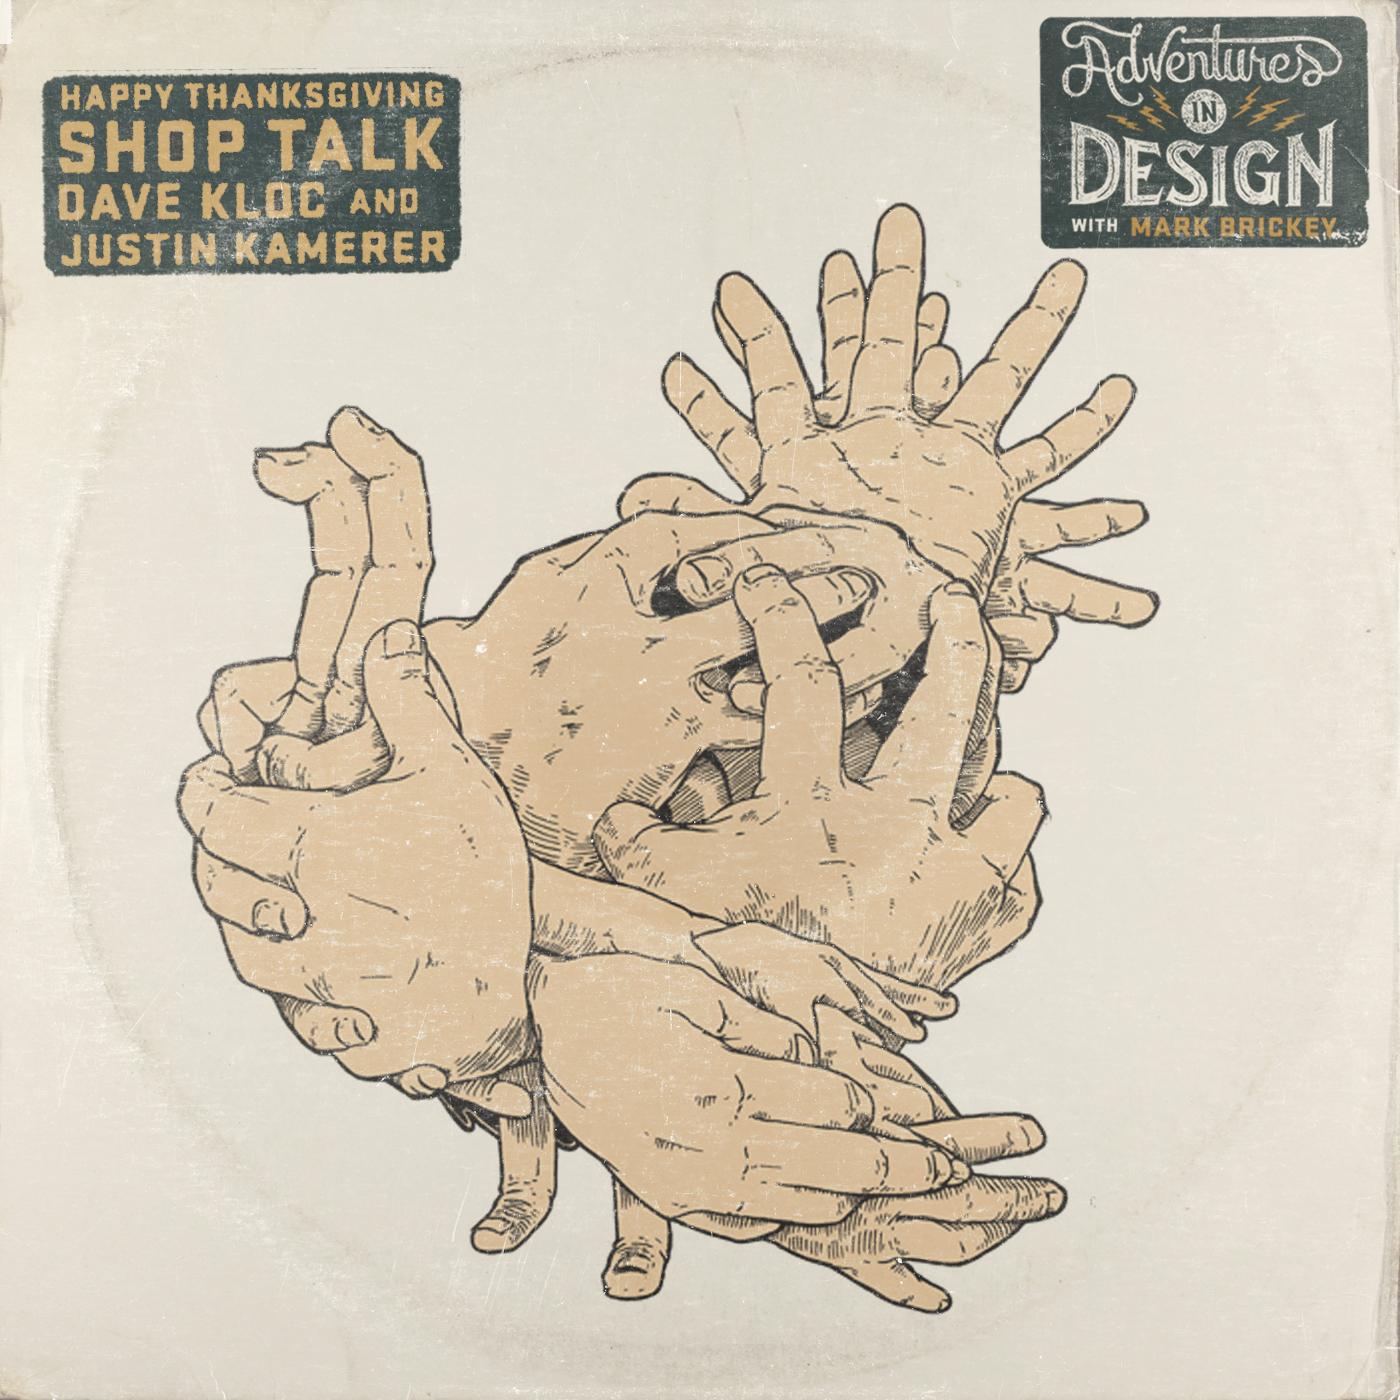 290 - Dave Kloc and Angrybue A Shop Talk Thanksgiving